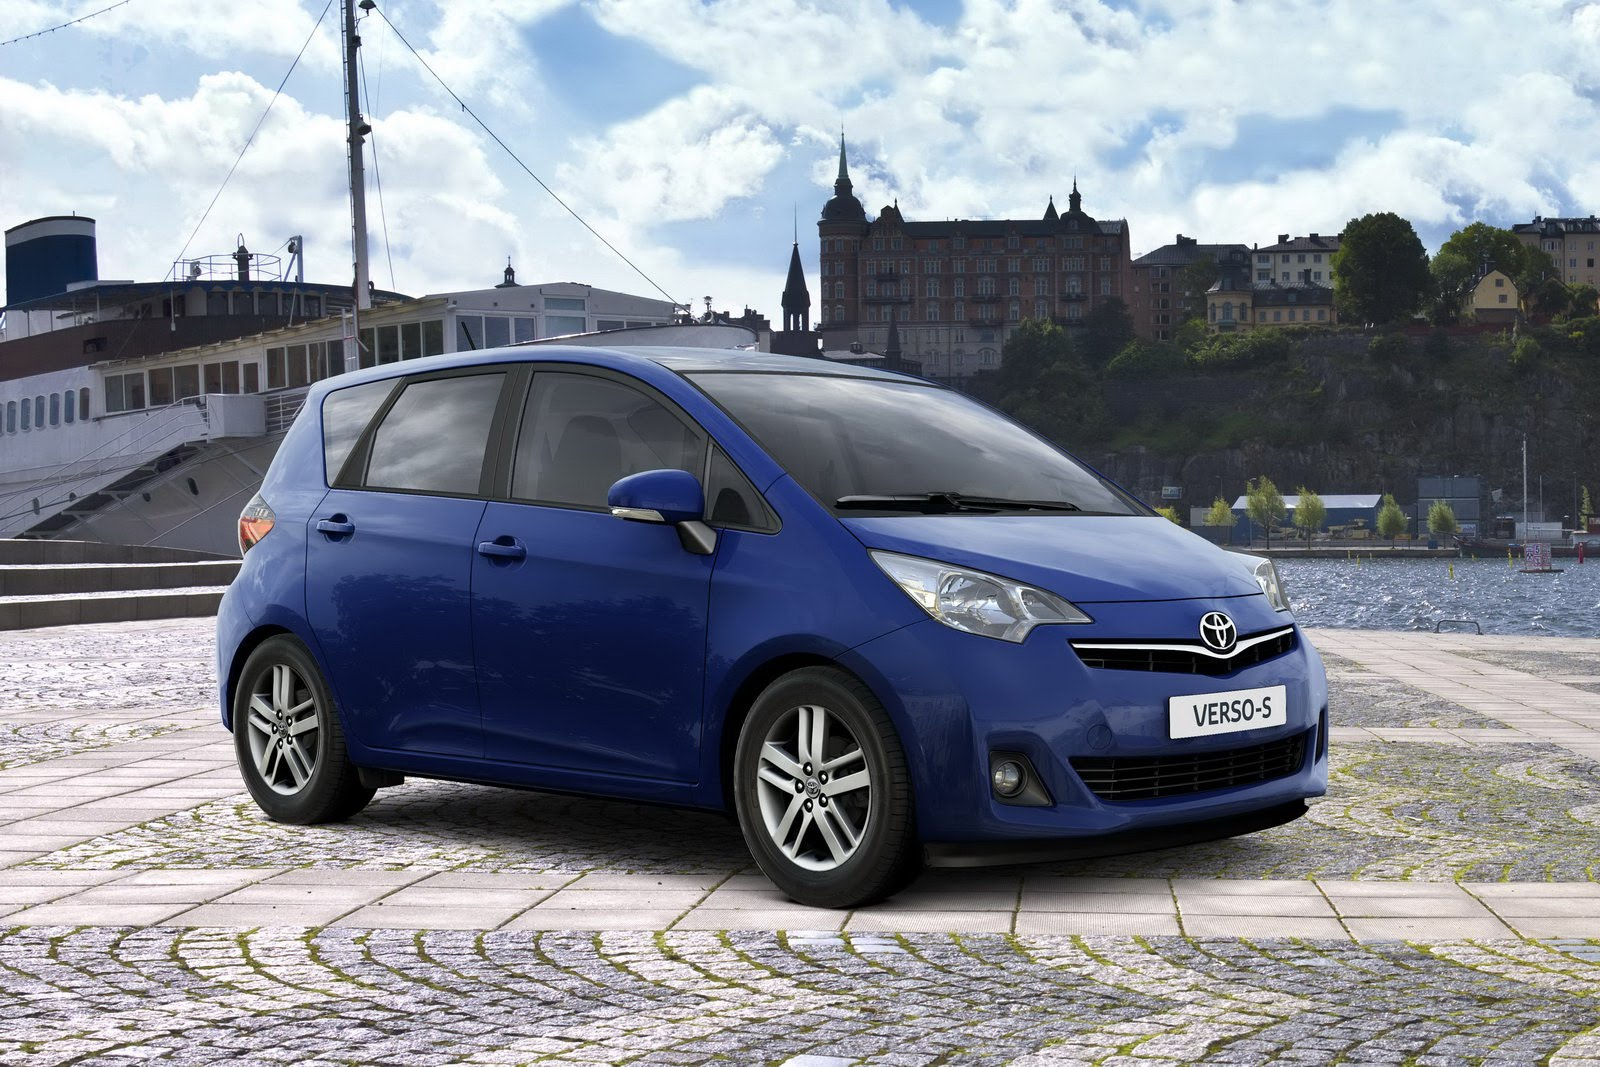 new toyota verso s small mpv car search engines. Black Bedroom Furniture Sets. Home Design Ideas